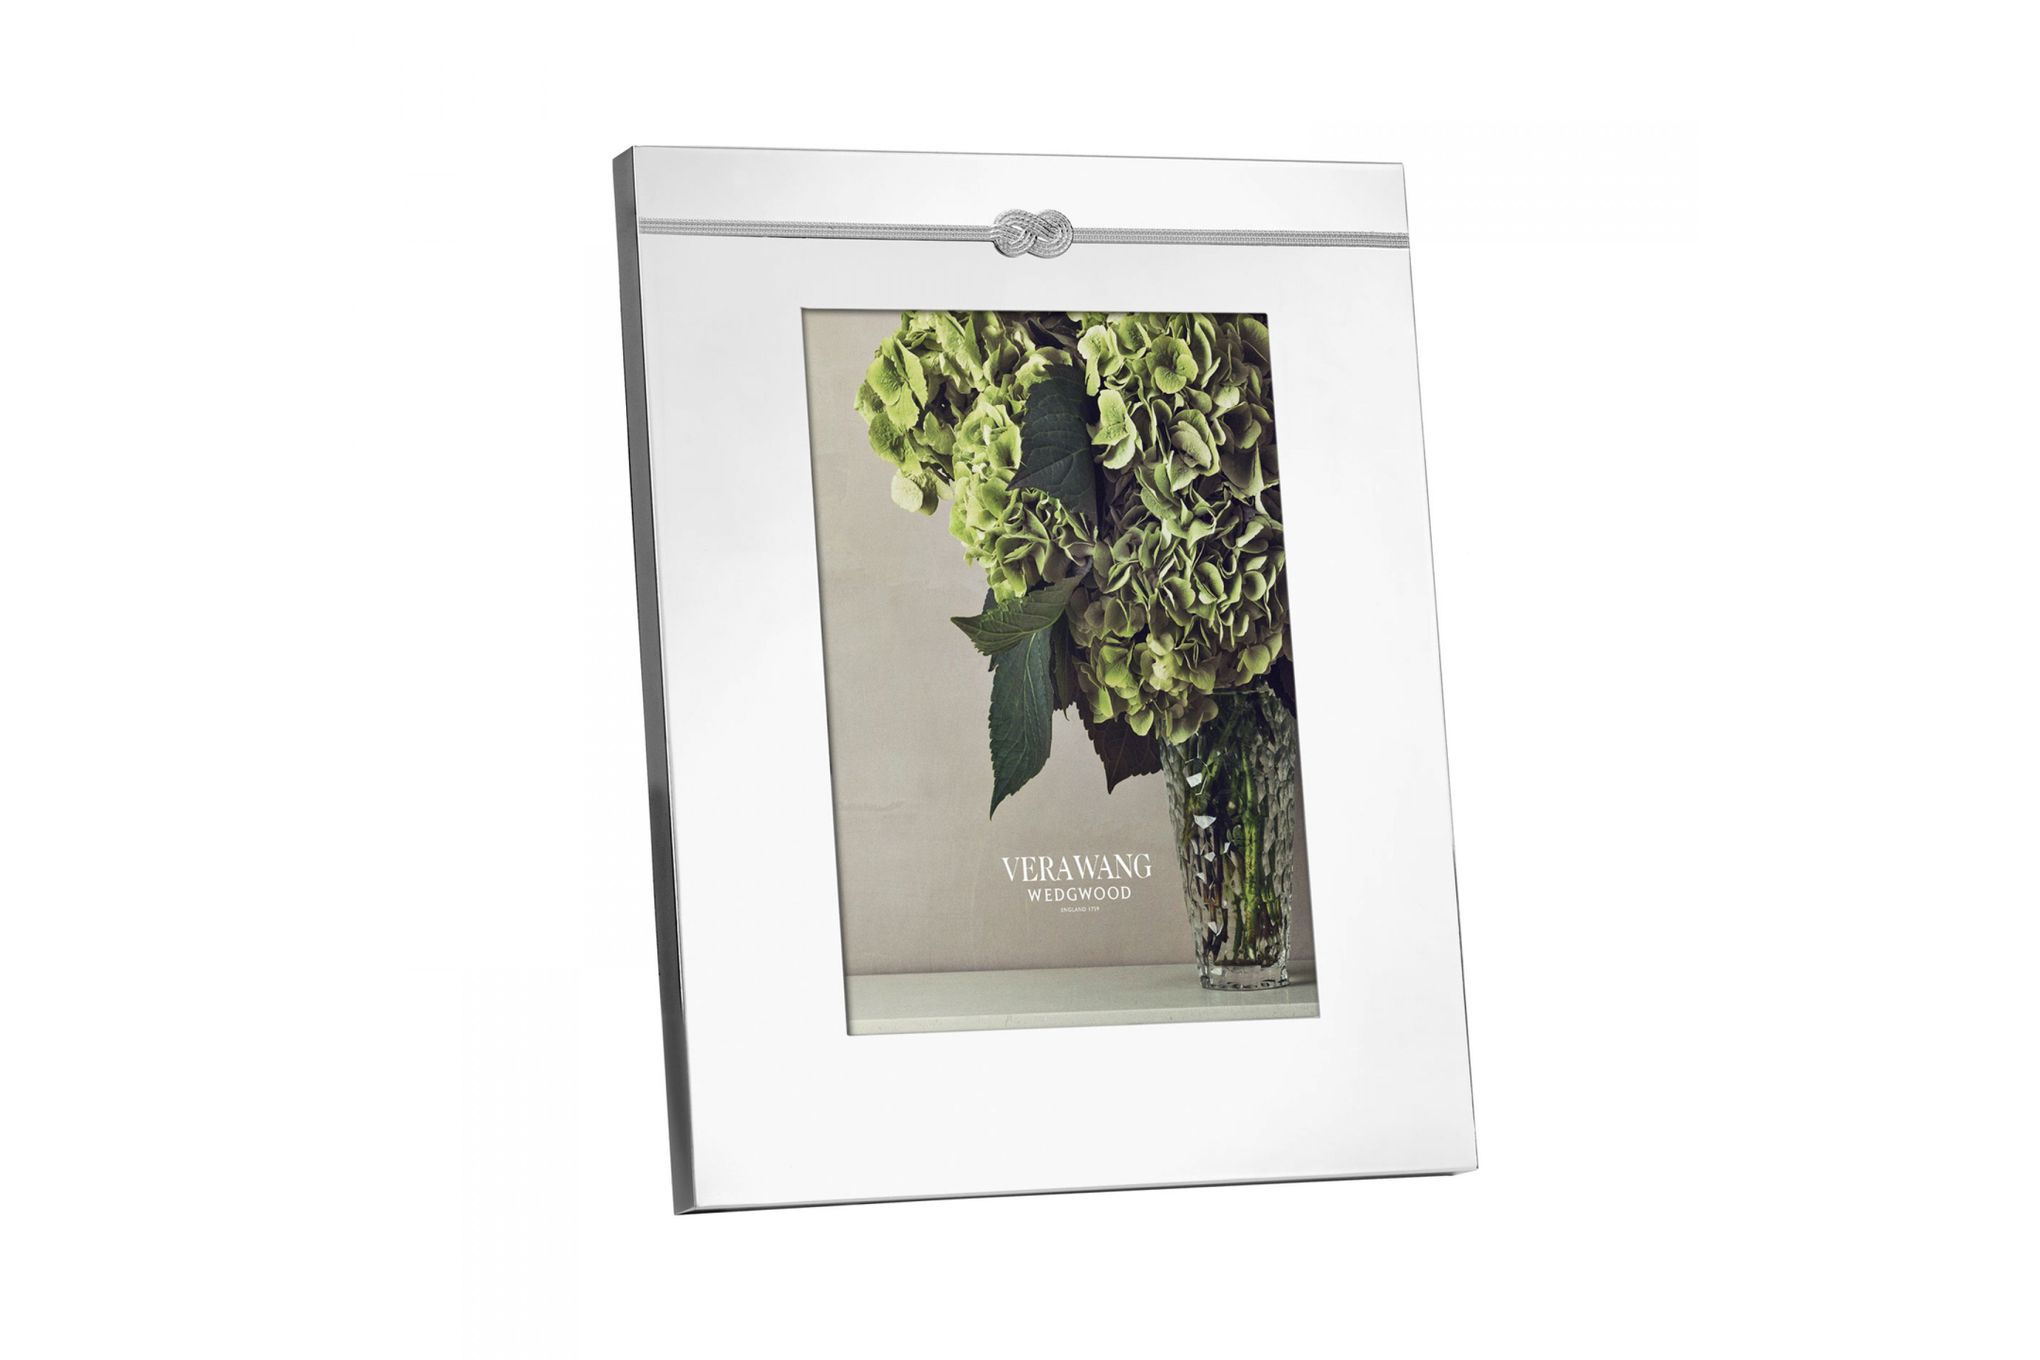 "Vera Wang for Wedgwood Gifts & Accessories Photo Frame Infinity 8 x 10"" thumb 1"